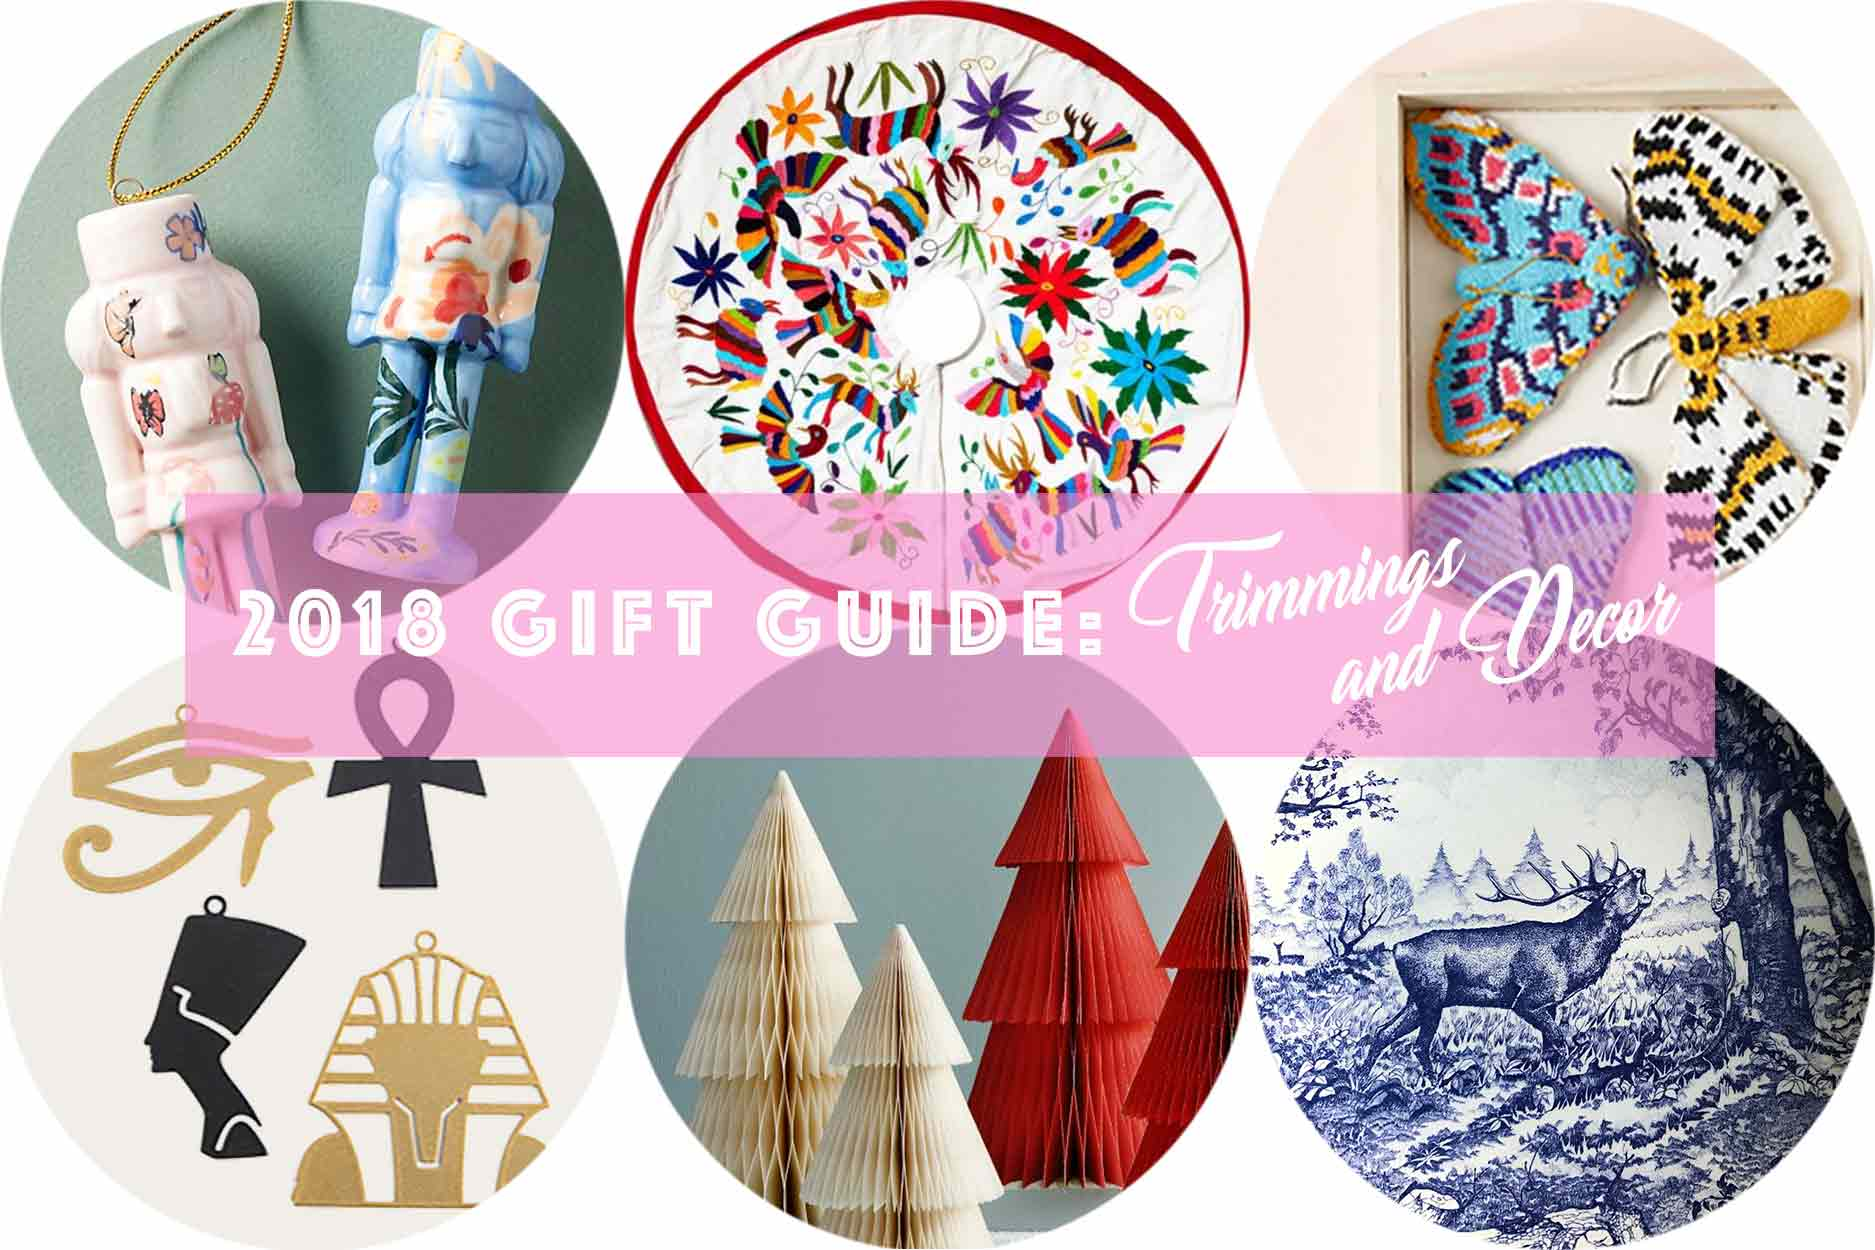 2018 Gift Guide: Trimmings & Decor, Design*Sponge